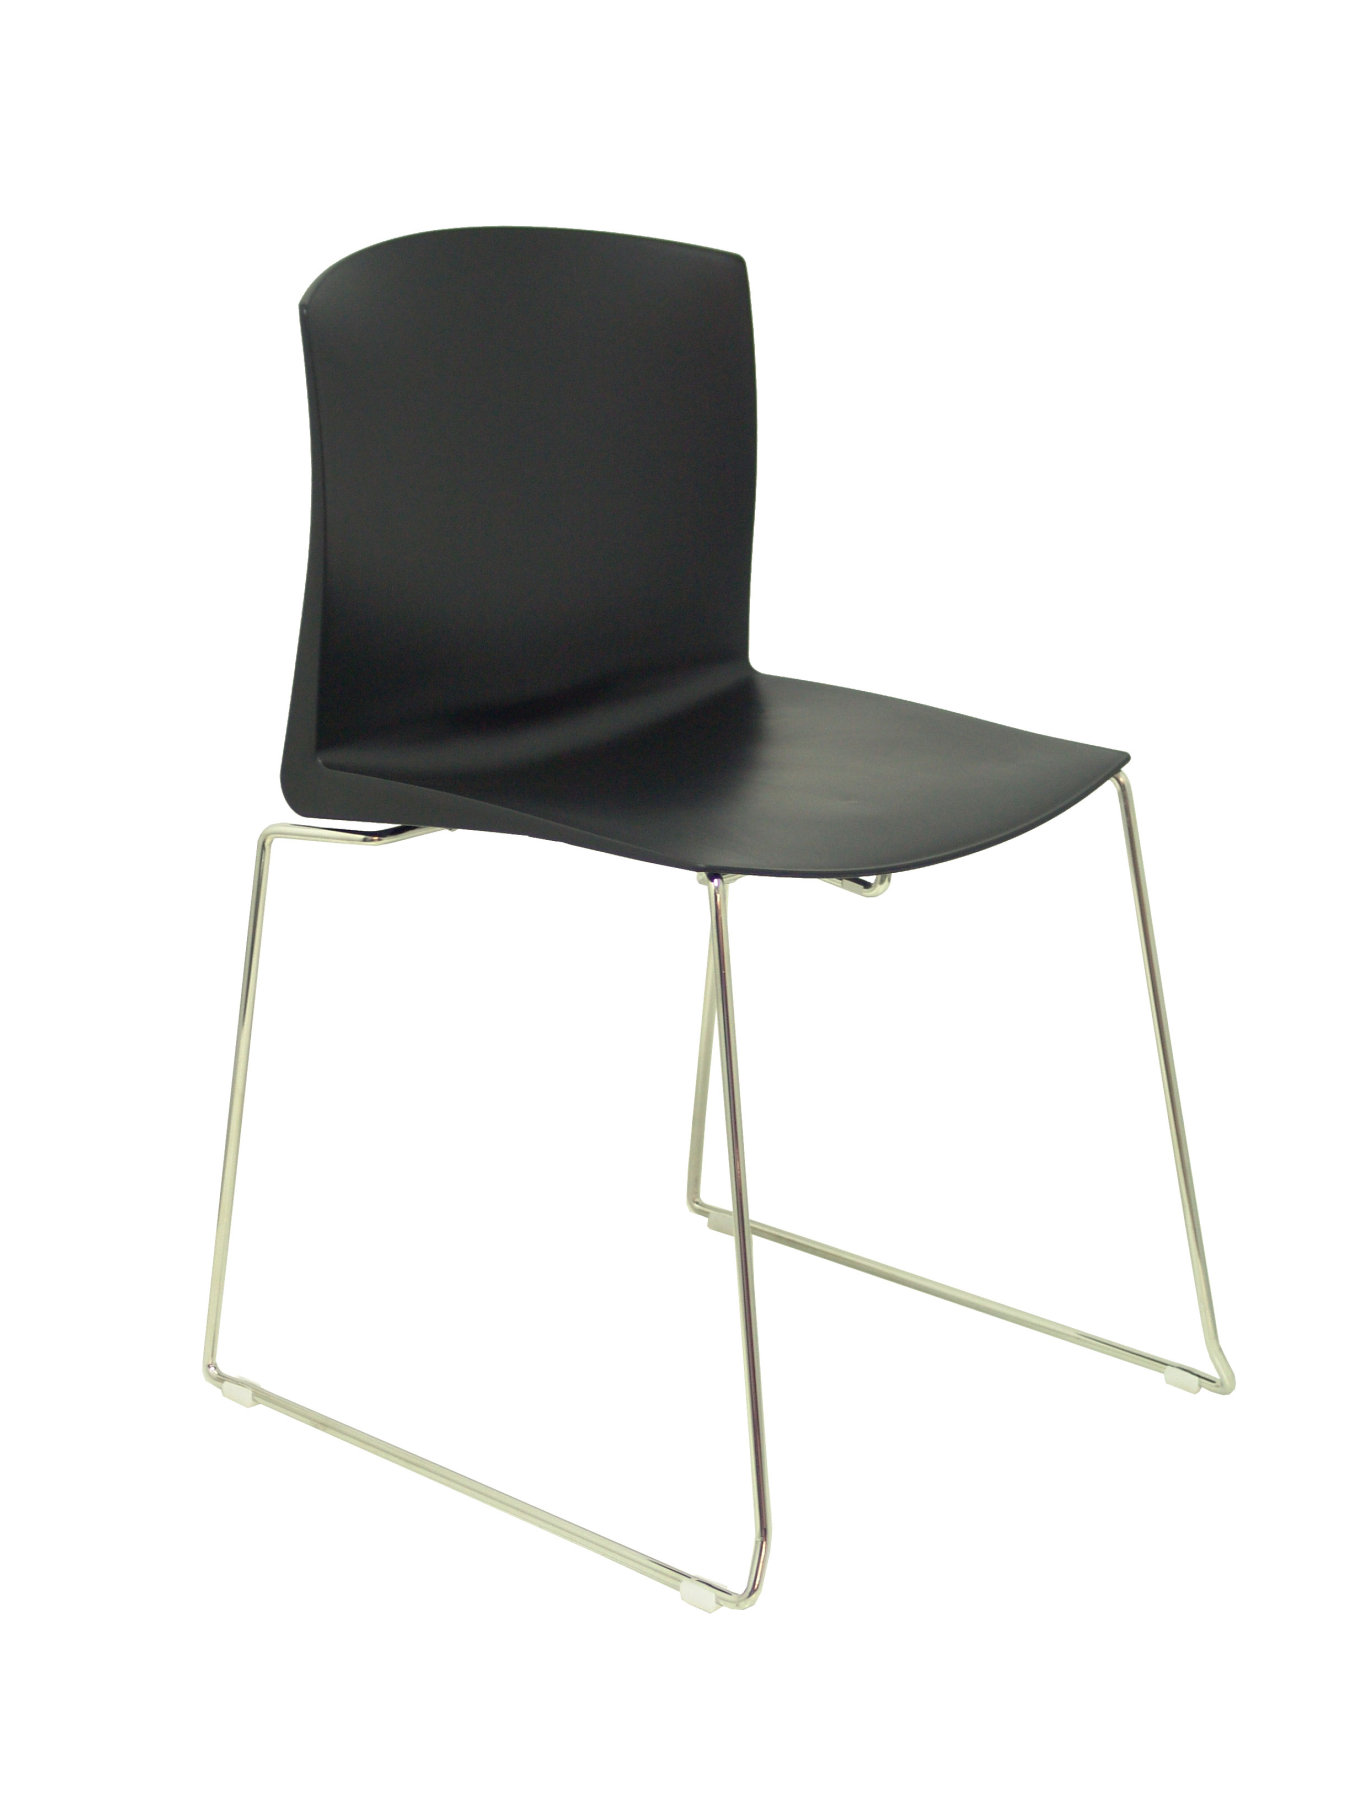 Pack 4 Confident Chairs Ergonomic Stackable And With Rod Structure Chrome. Seat And Back Color PVC